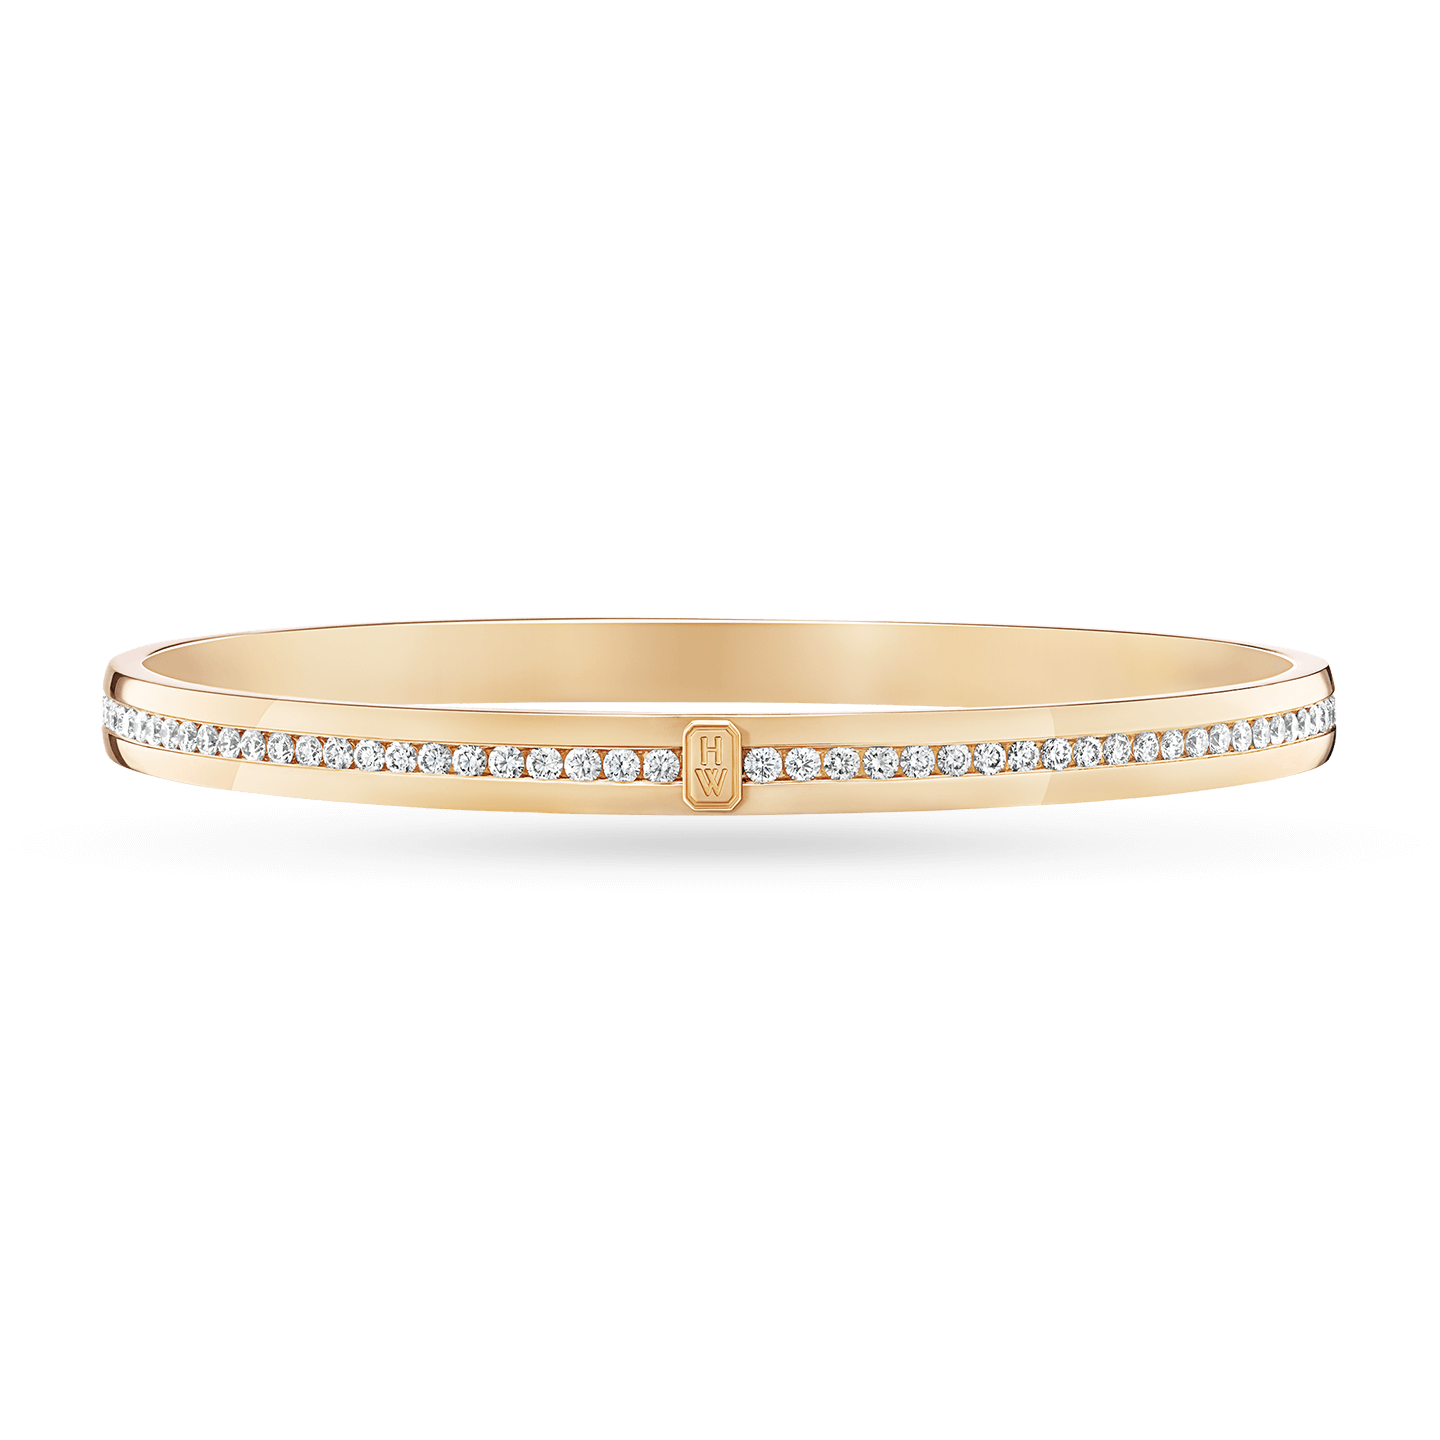 HW Logo Yellow Gold Accent Diamond Bangle Bracelet, Product Image 1